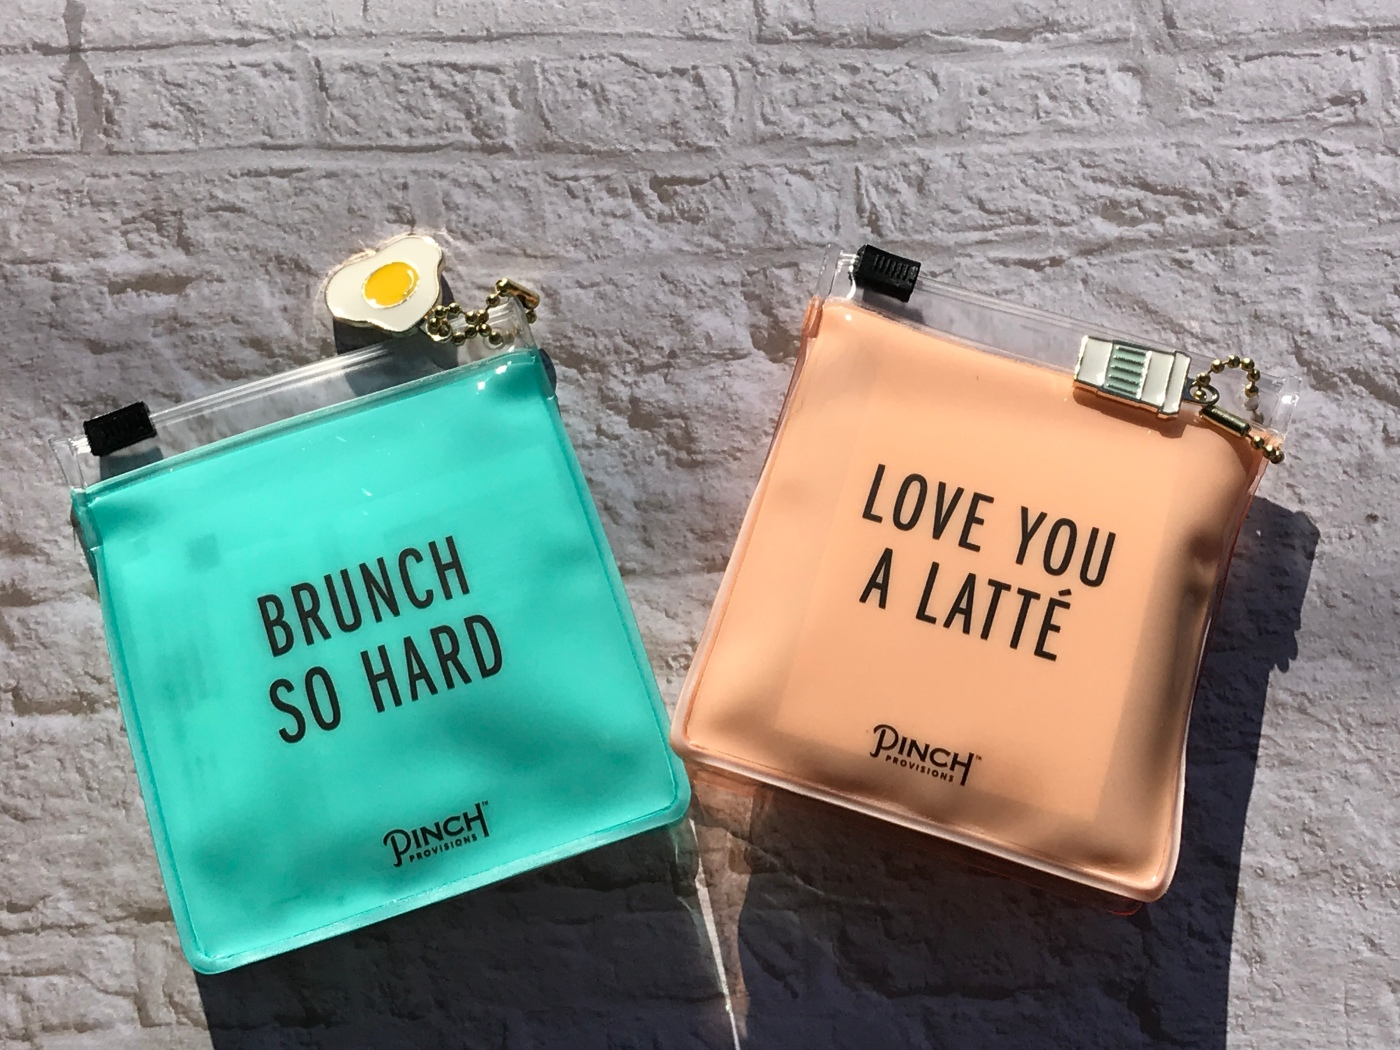 The Perfect Gifts for Foodies - Pinch Provisions Has a Brunch Kit and a Coffee Kit